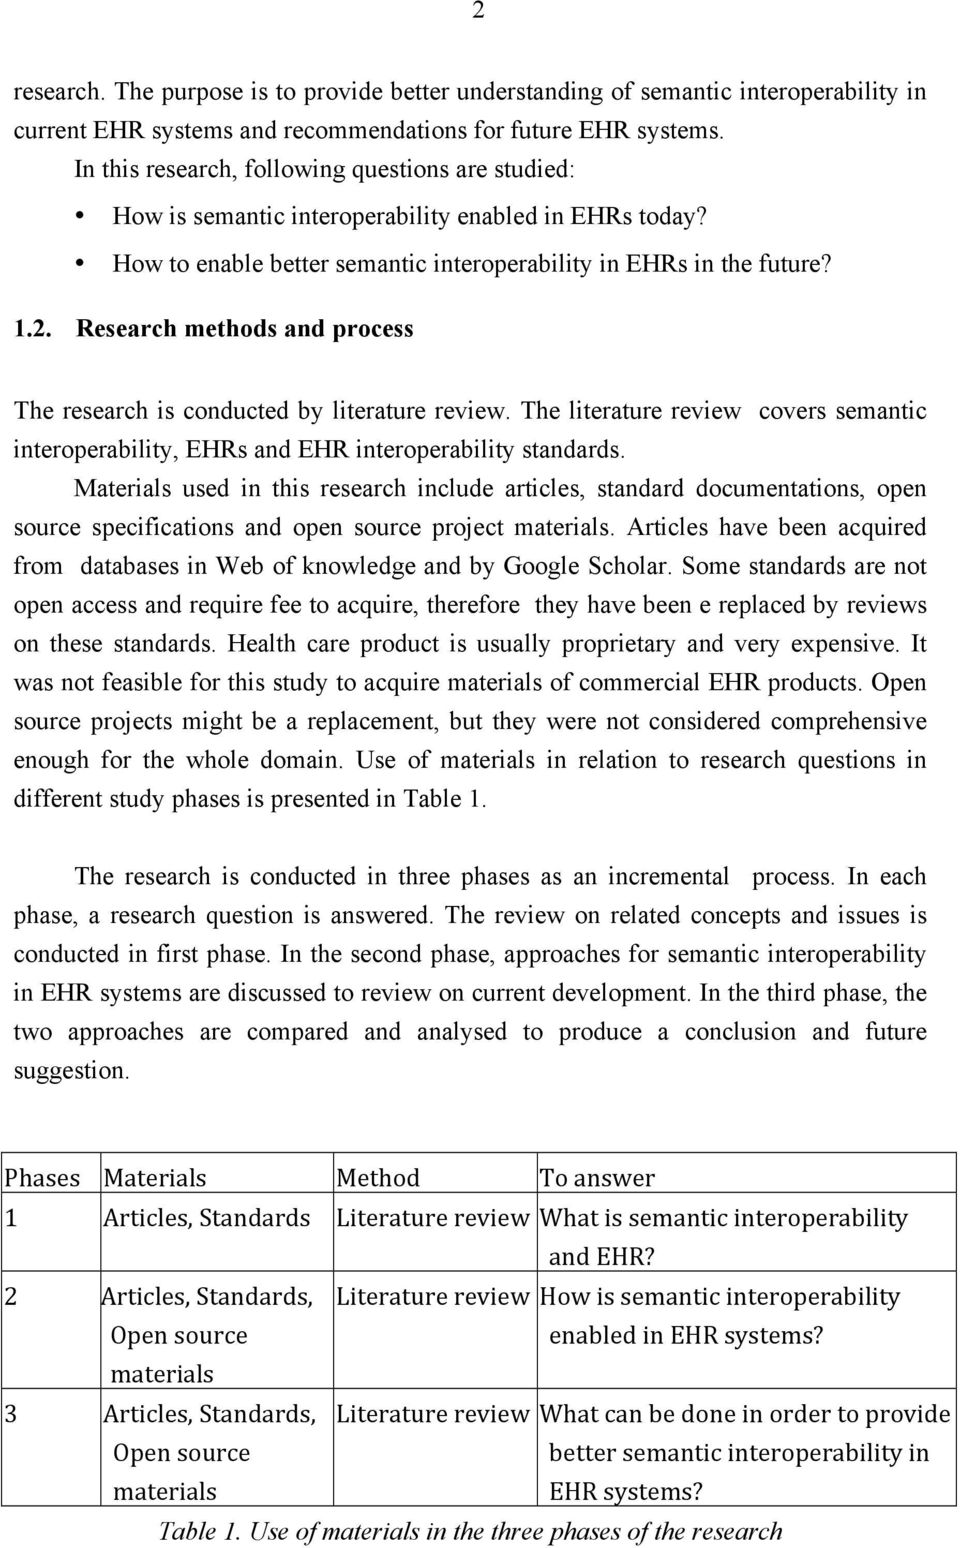 Research methods and process The research is conducted by literature review. The literature review covers semantic interoperability, EHRs and EHR interoperability standards.